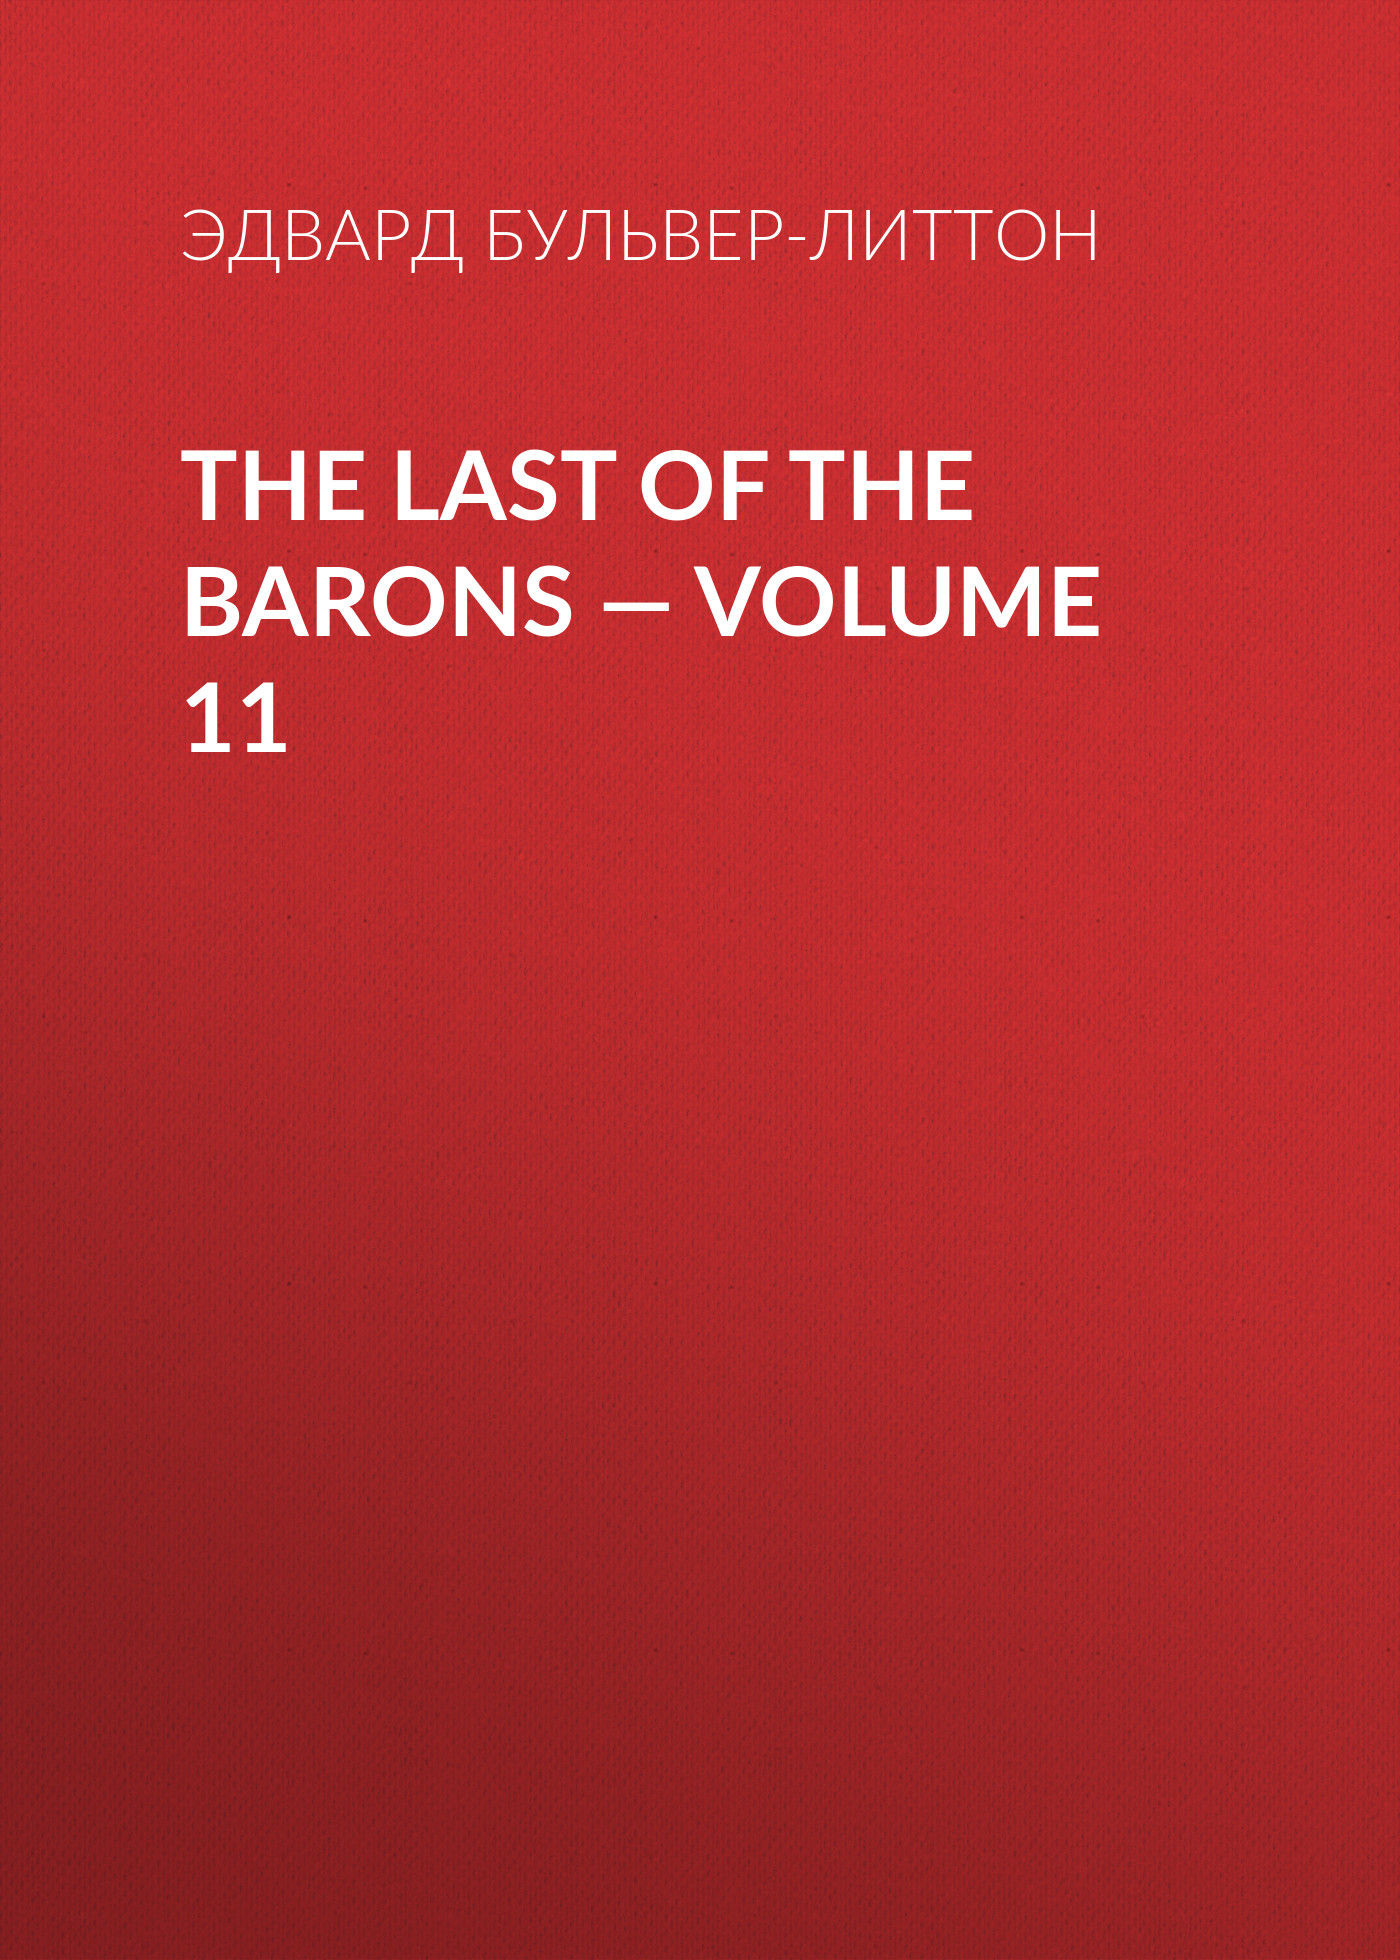 Эдвард Бульвер-Литтон The Last of the Barons — Volume 11 fayrene preston the barons of texas tess